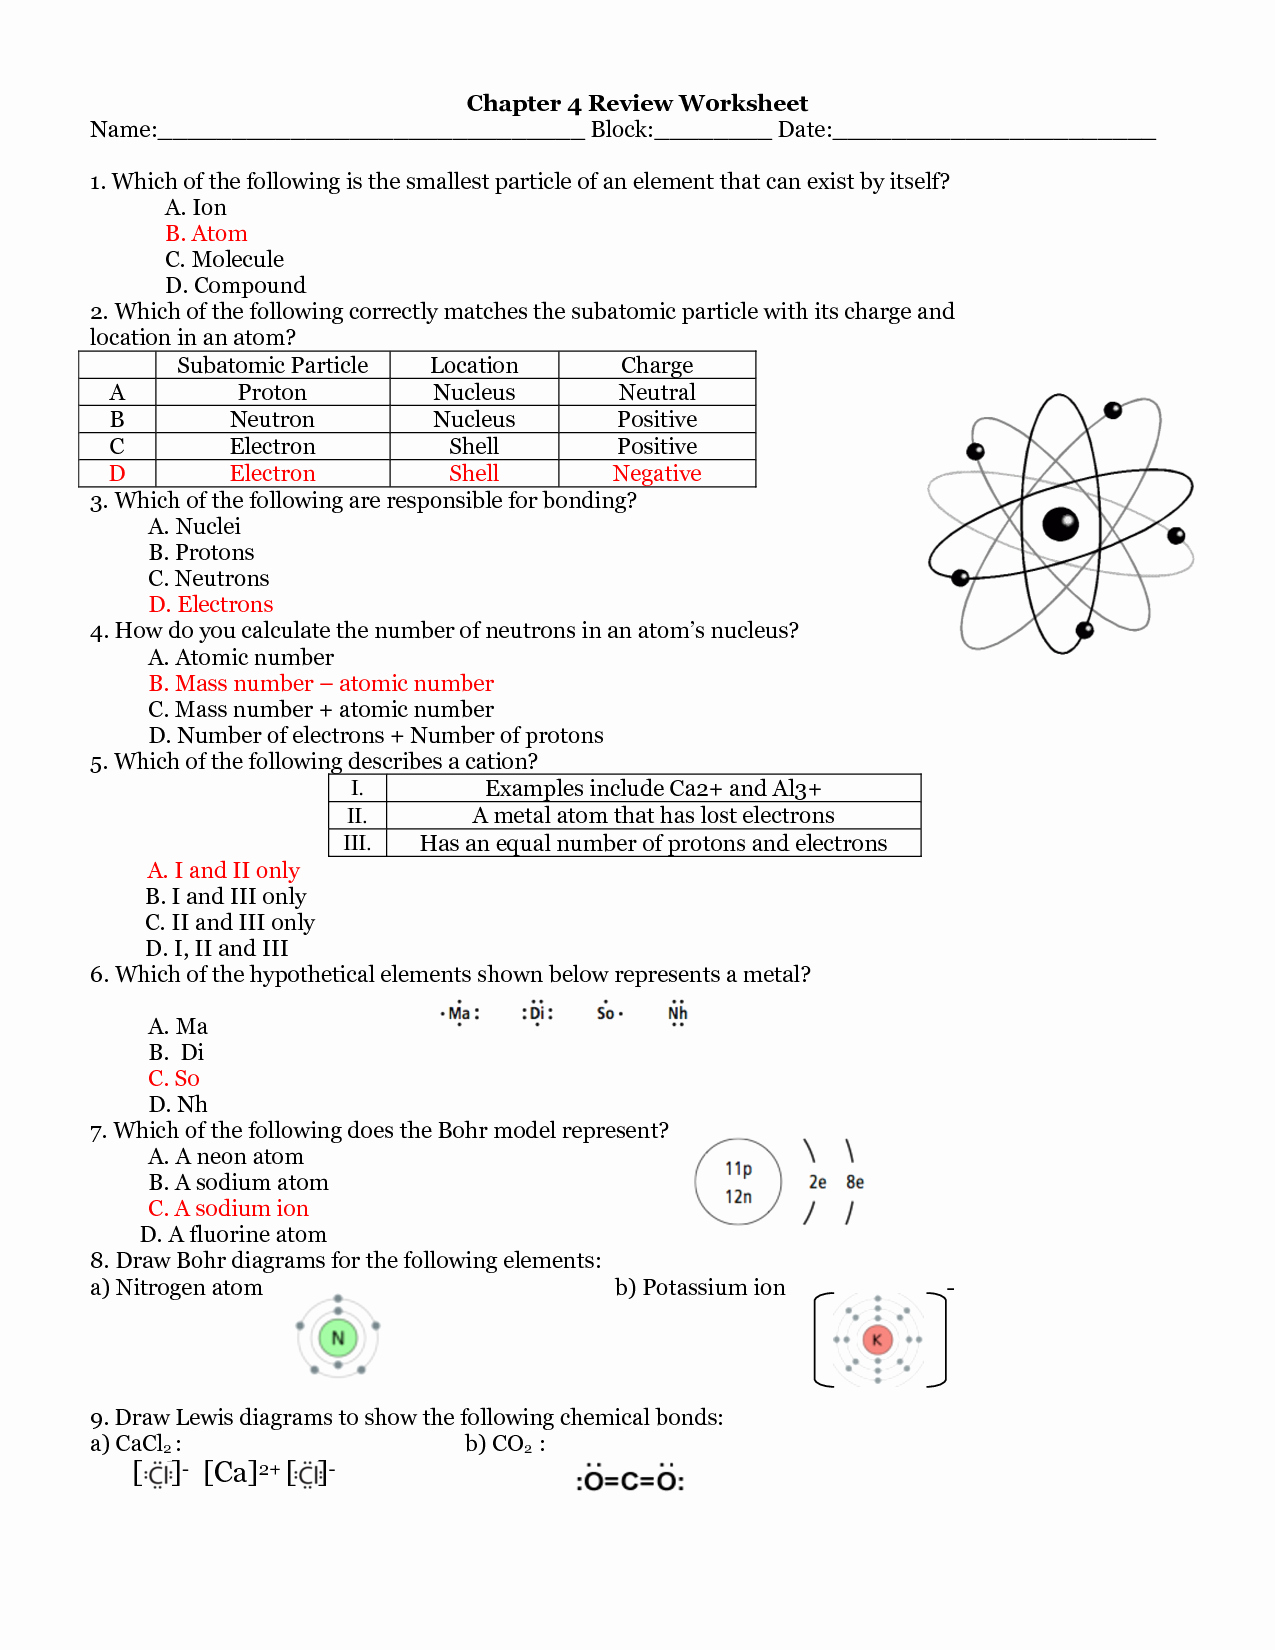 Virtual Frog Dissection Worksheet Answer Key